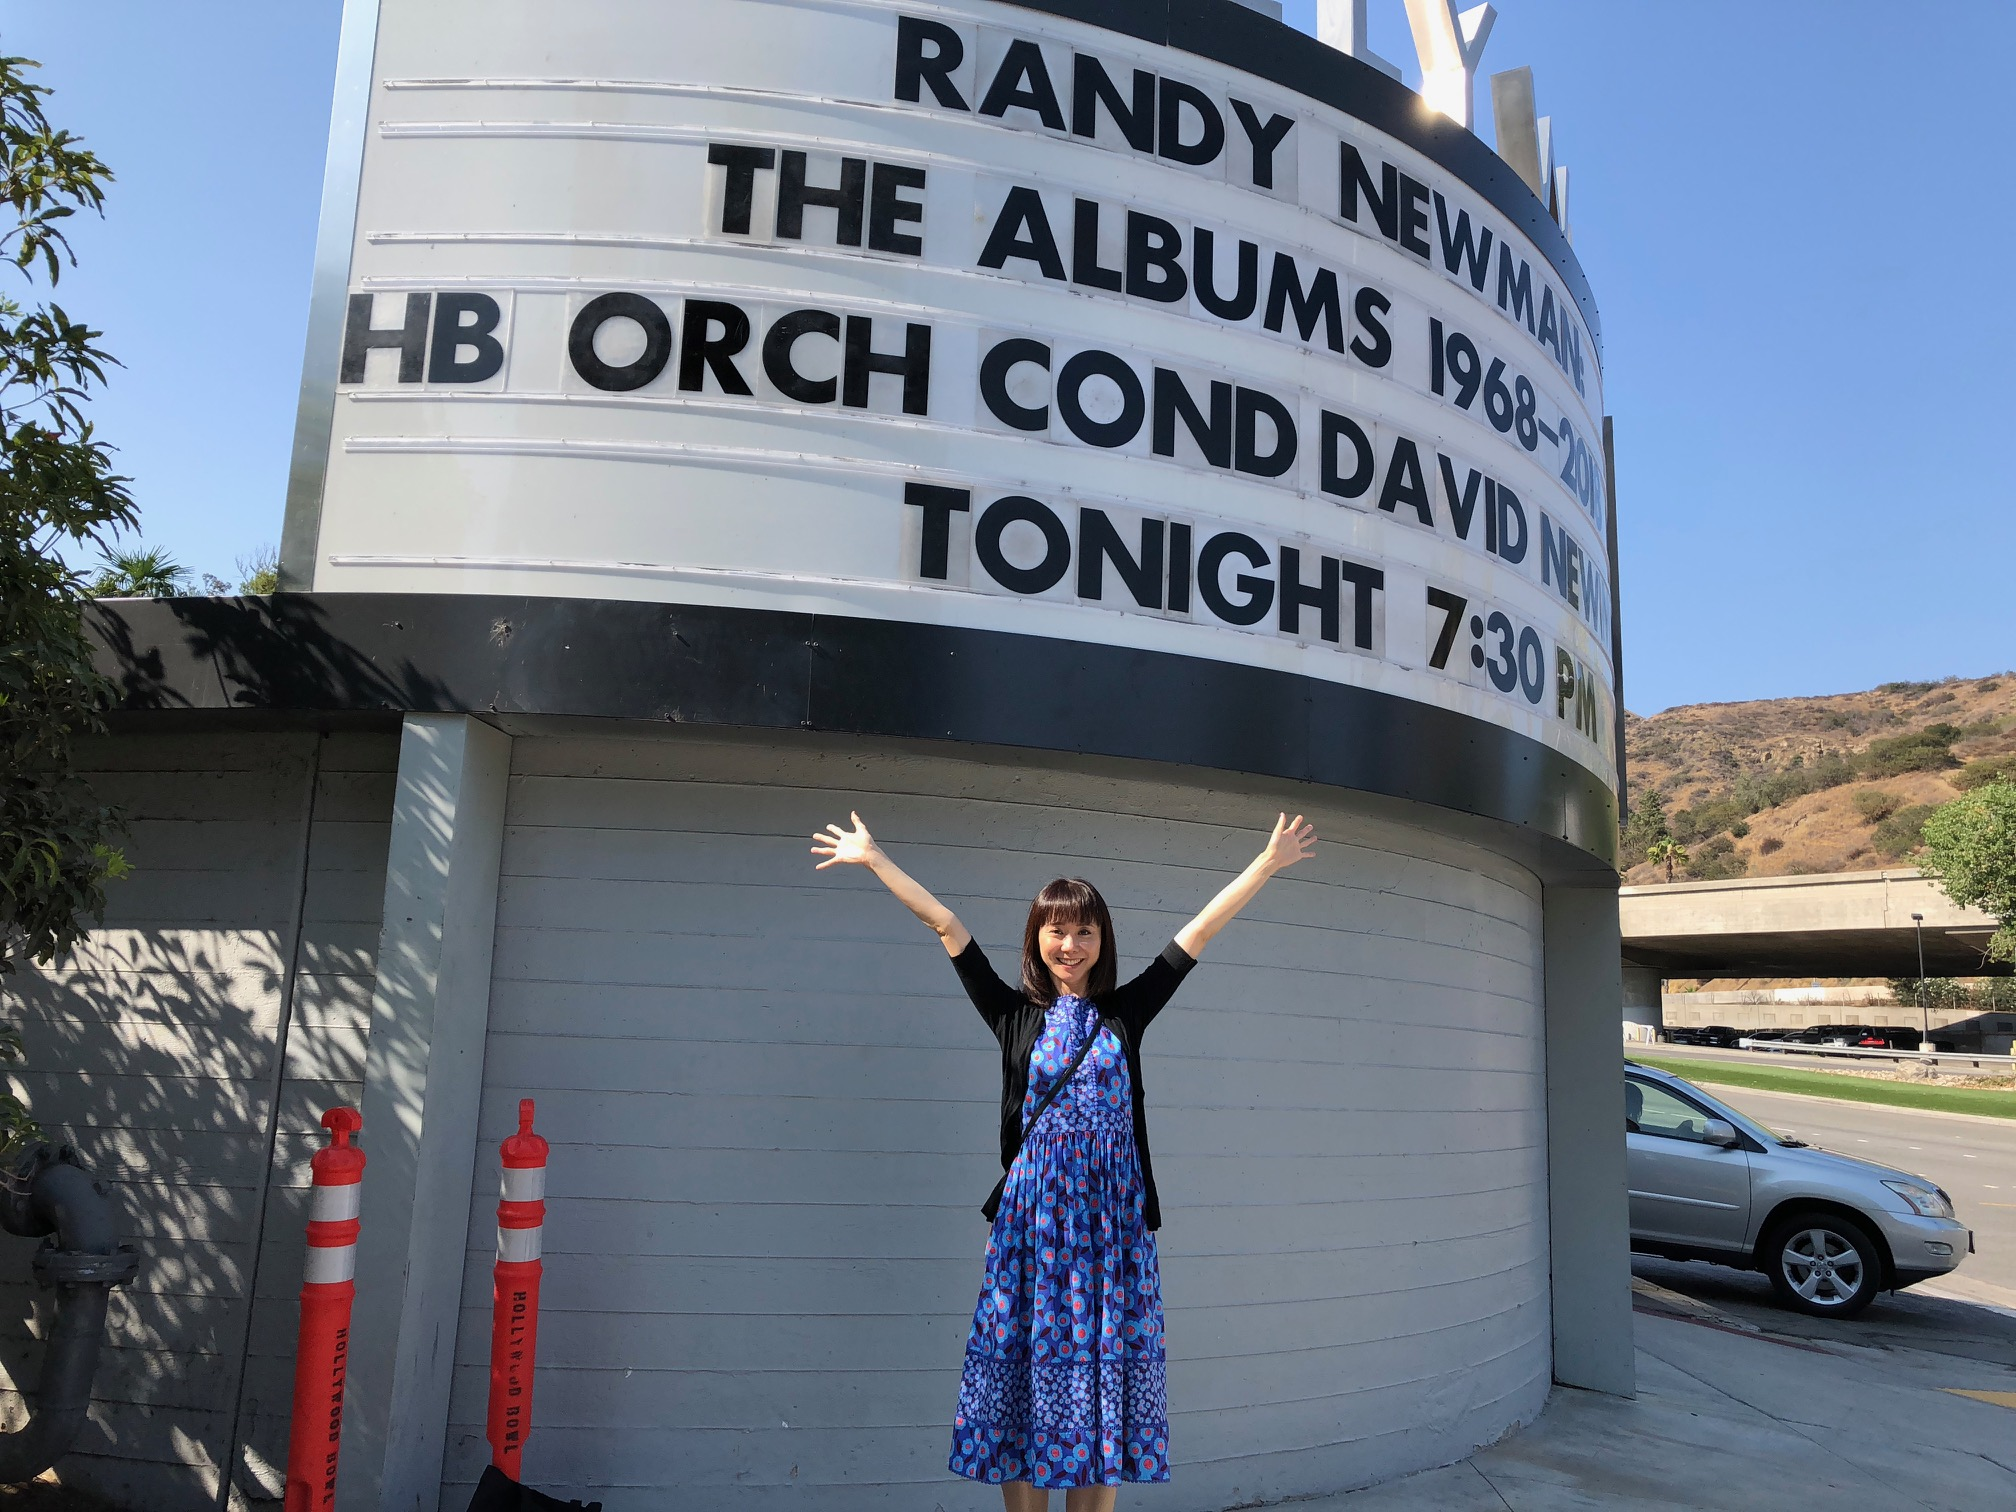 RANDY NEWMAN in Los Angeles(blog)